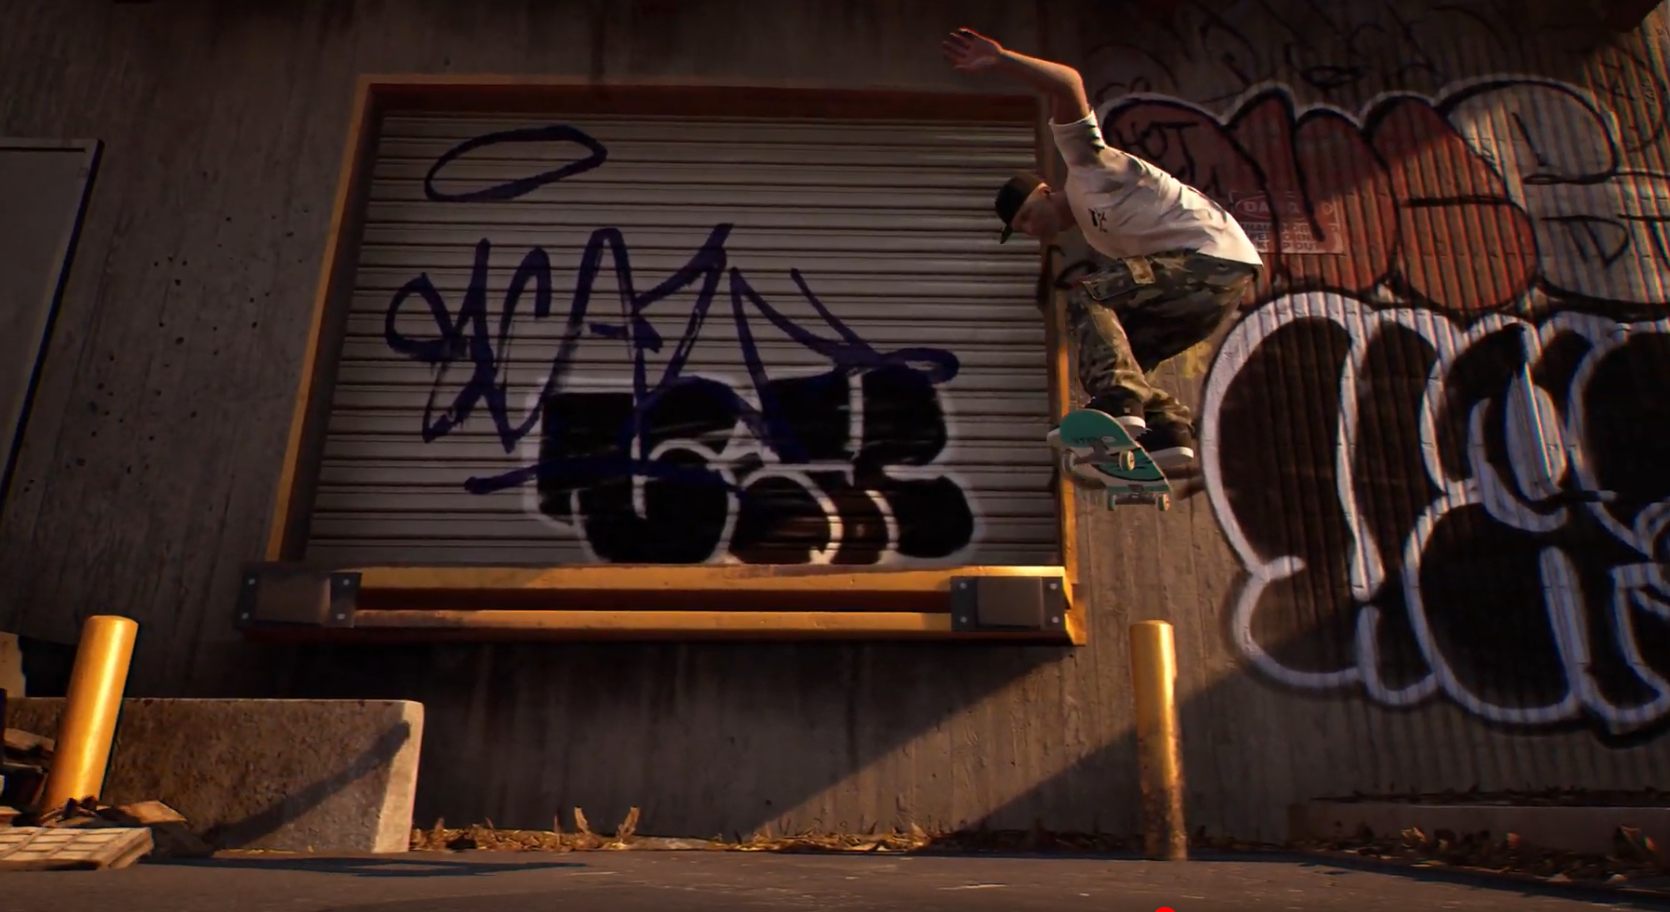 The Skateboarding Game Session Now Has A Lo-Fi Chillhop Radio Station